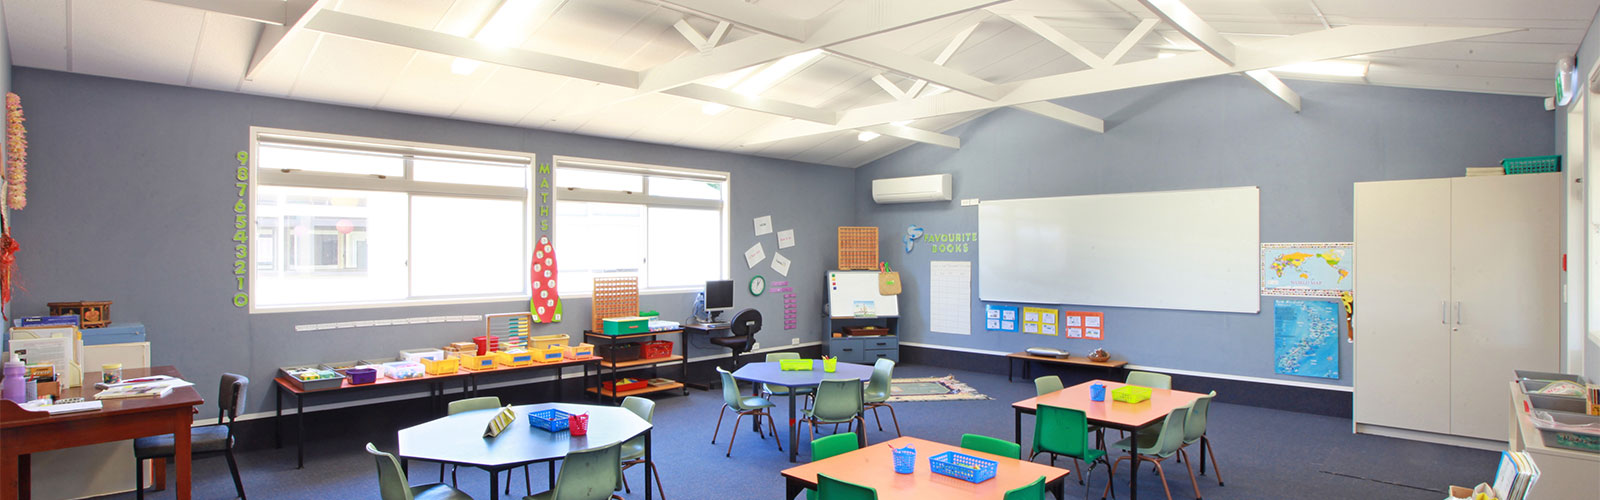 Builtsmart Transportable Classrooms